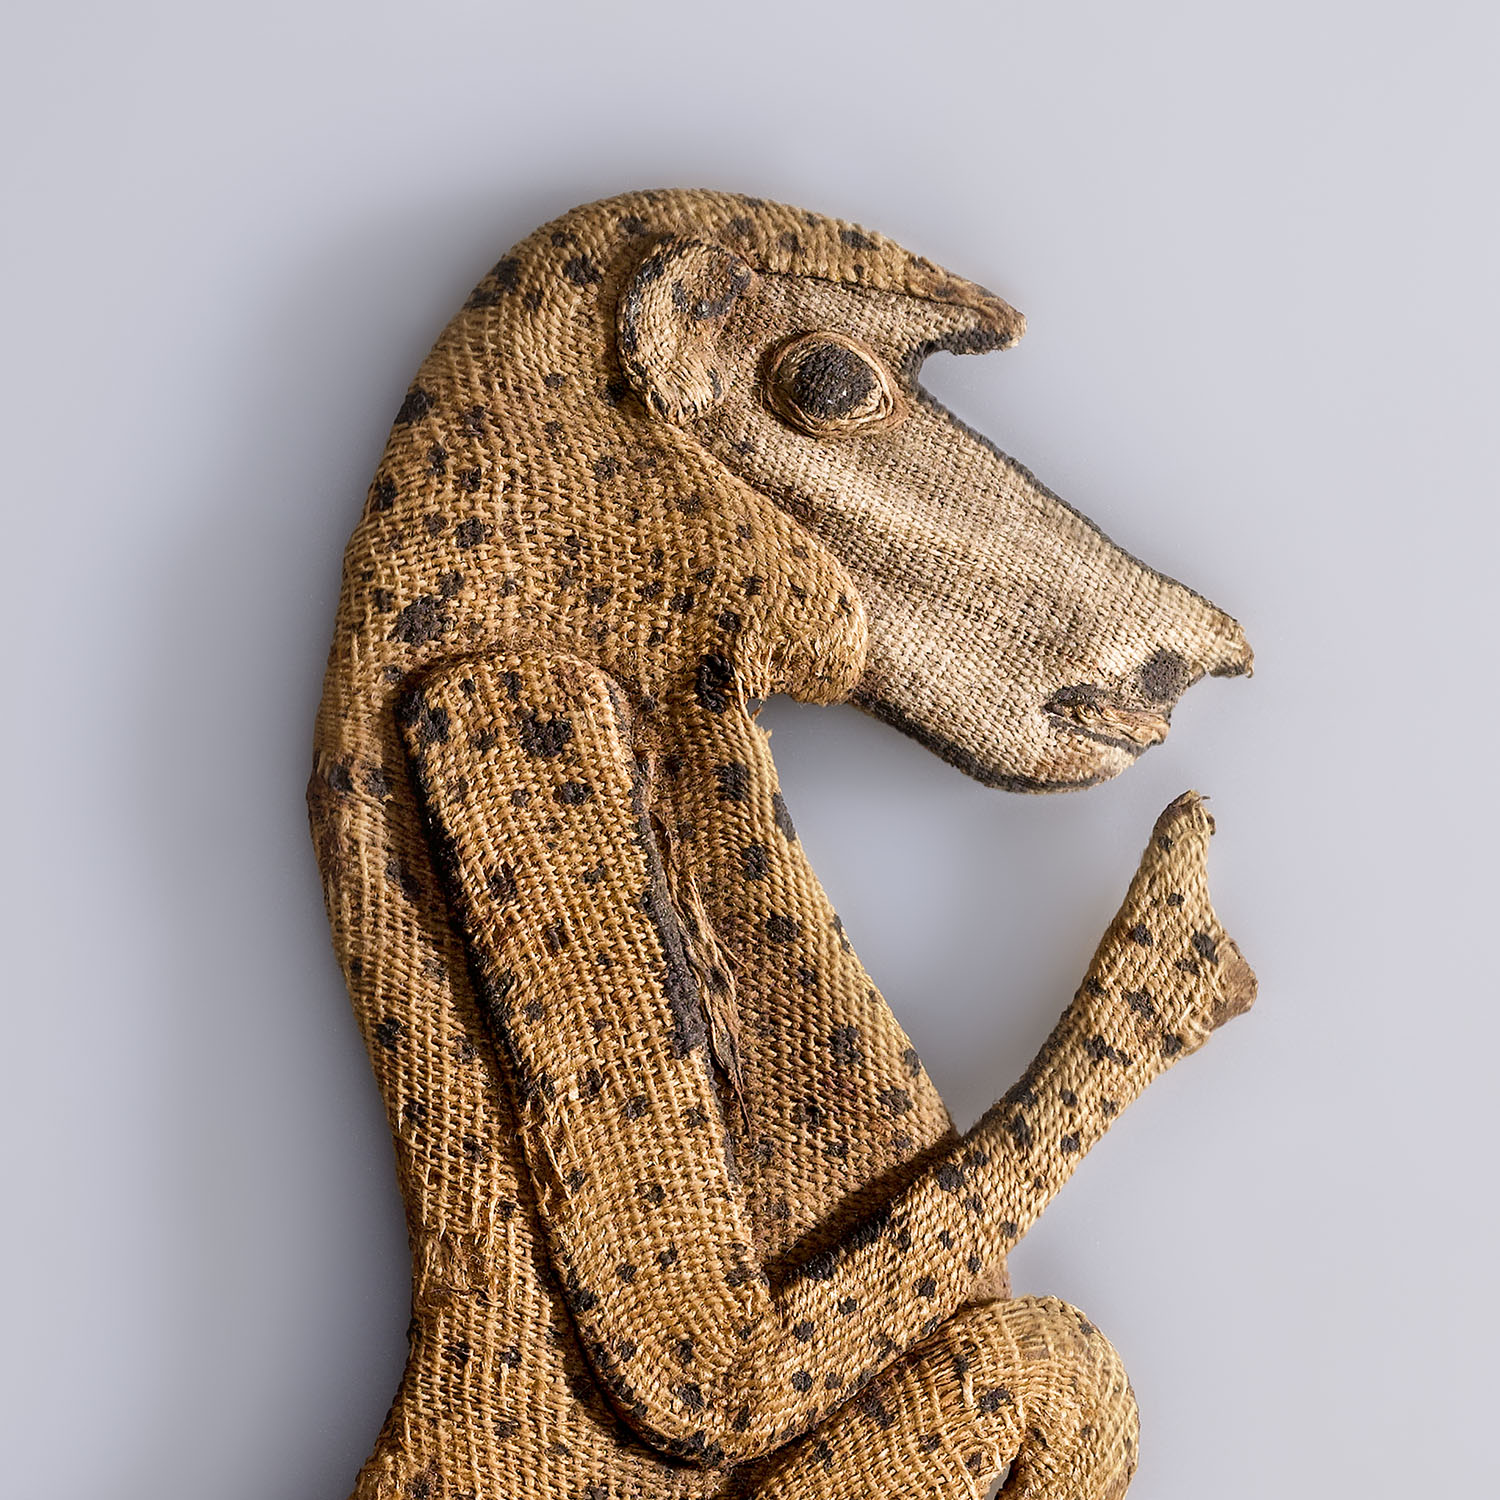 Baboon Appliqué from an Animal Mummy. Possibly from Saqqara, Egypt. Ptolemaic Period, 305–30 B.C.E. Linen, 51/2 x 23/8 in. (14.2 x 5.6 cm). Brooklyn Museum; Charles Edwin Wilbour Fund, 37.272E. (Photo: Gavin Ashworth, Brooklyn Museum)